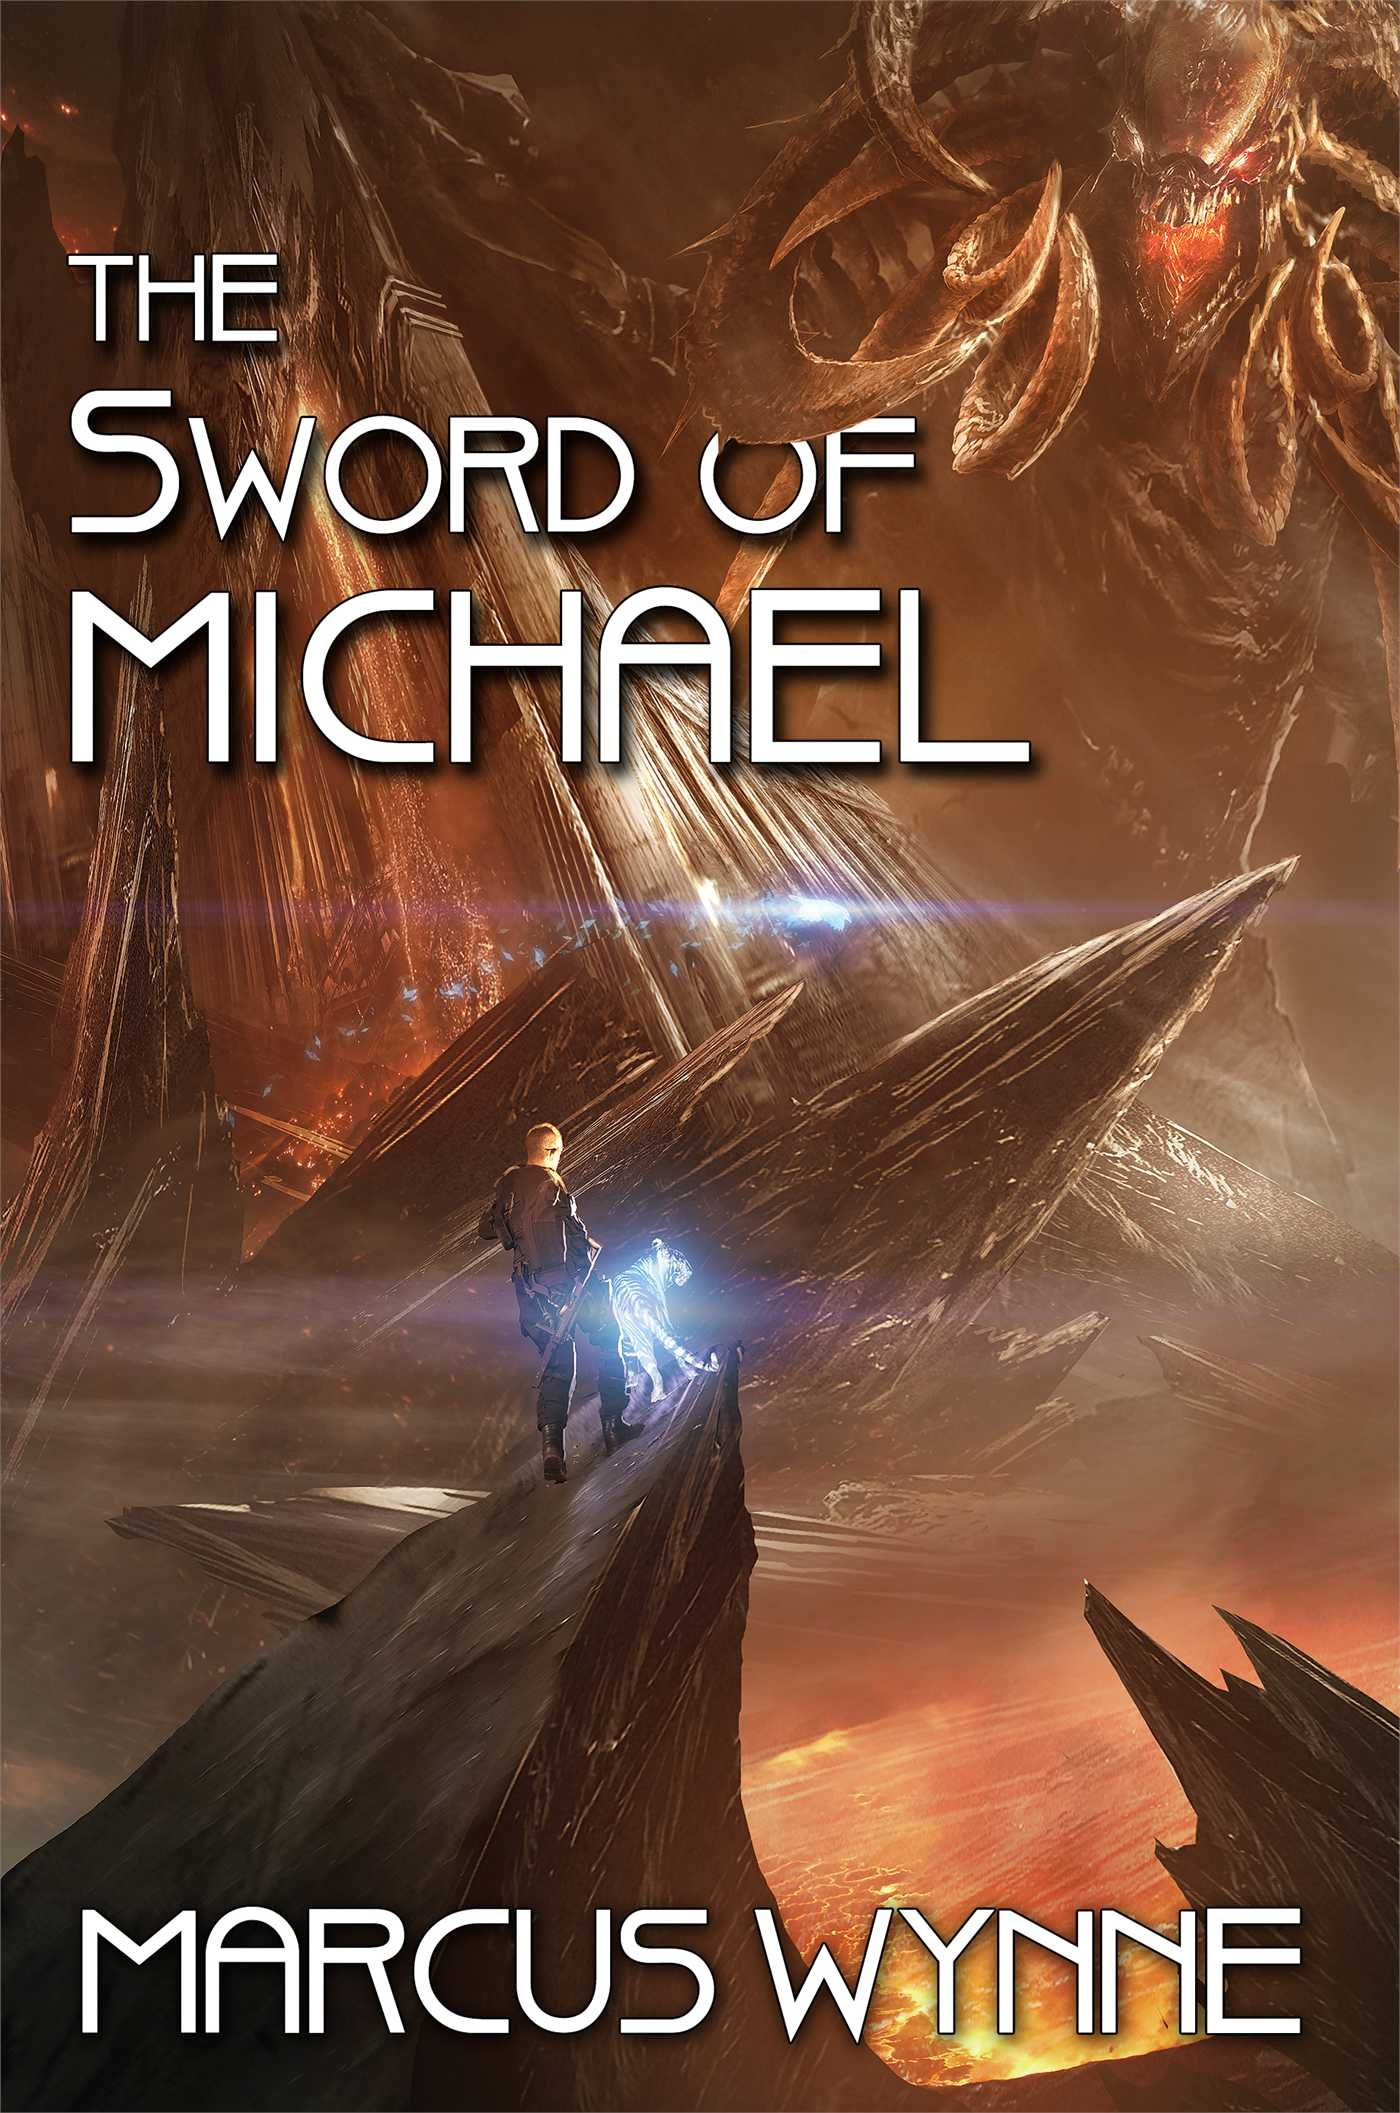 Marcus Wynne's The Sword of Michael